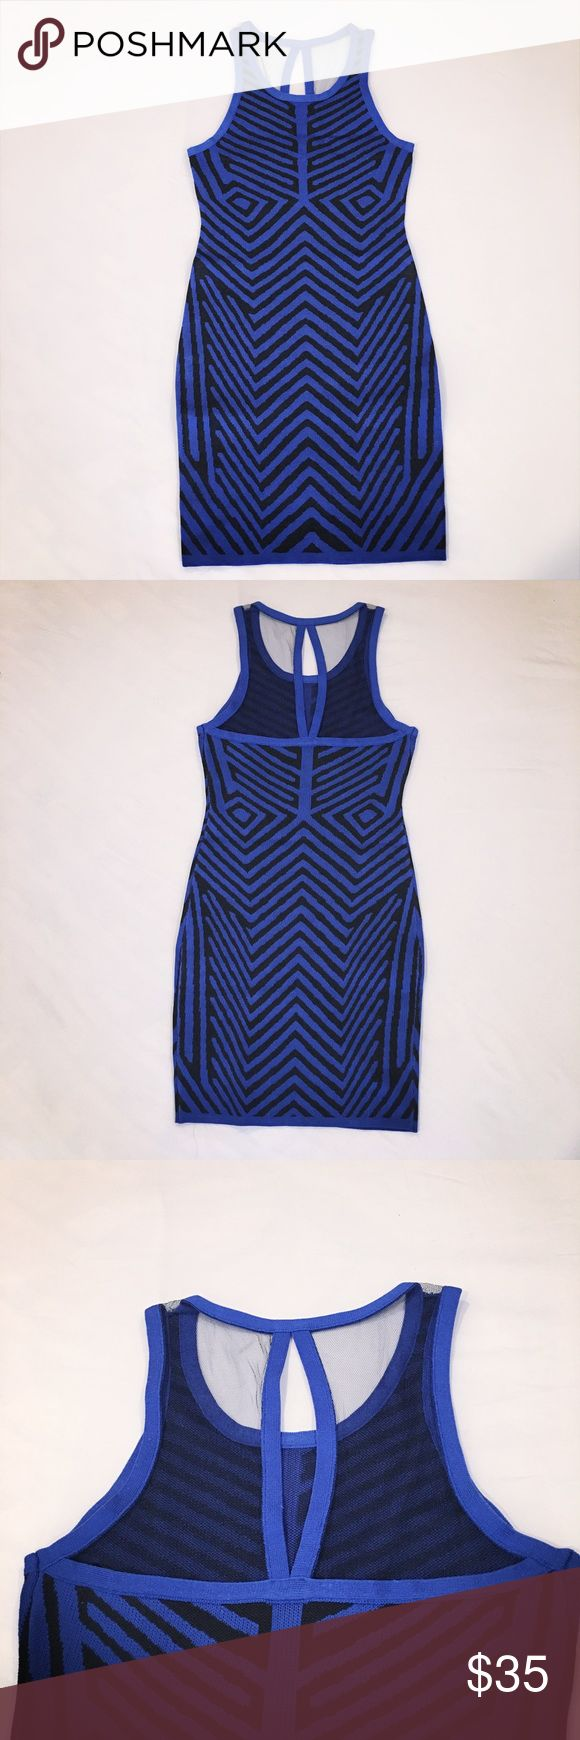 Blue bodycon dress - 2b Bebe This bodycon dress in a smooth fit that brings out every curve. This is brand new. Tags still on. Dresses Mini